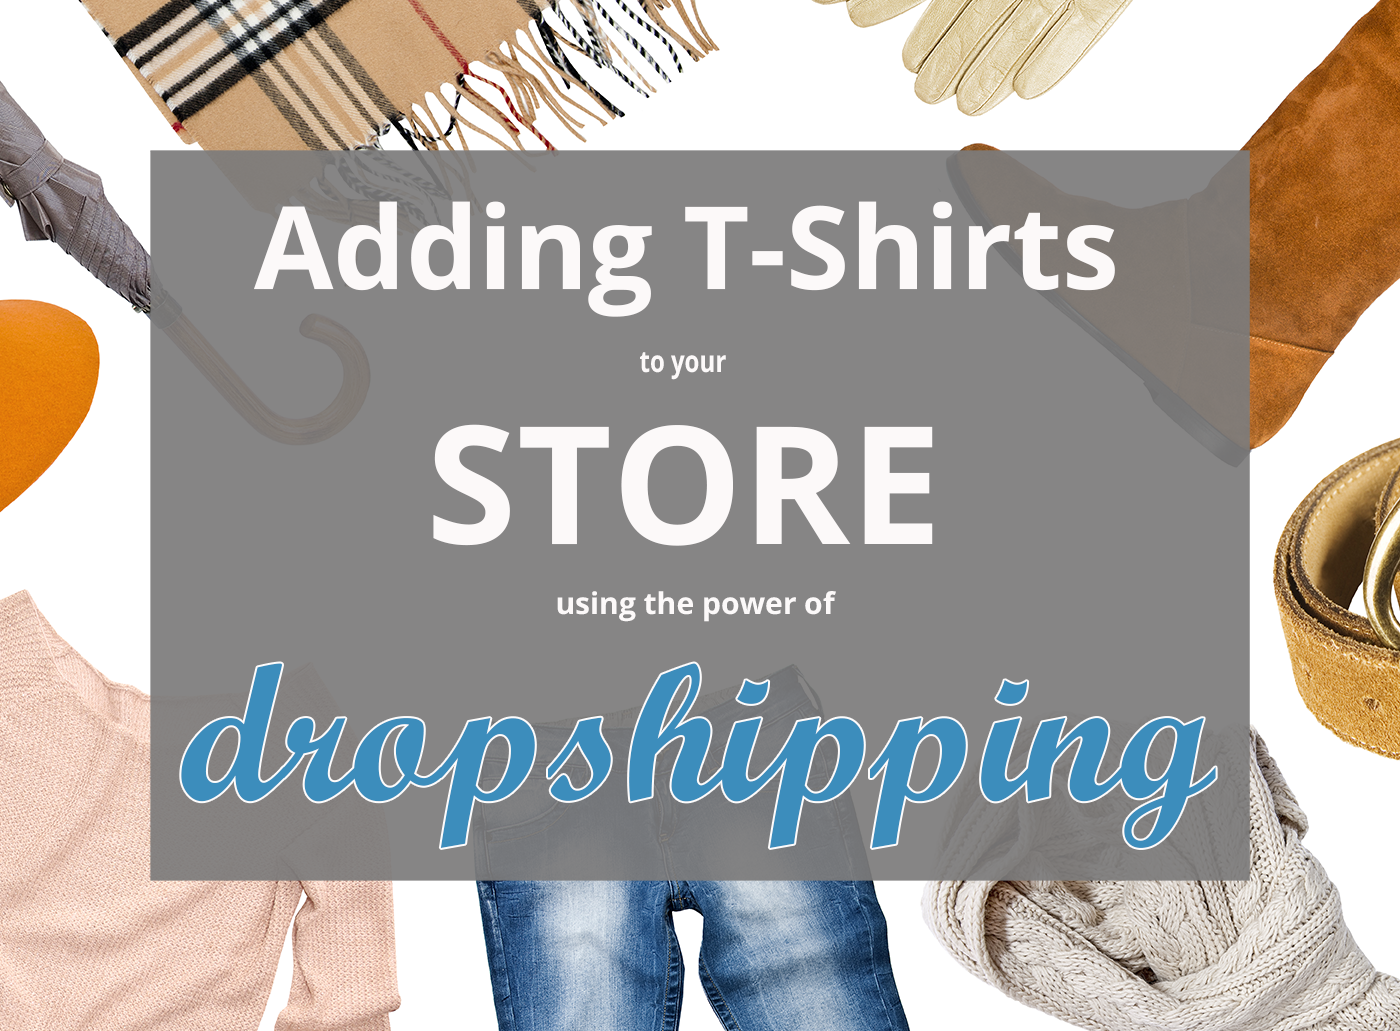 Adding t-shirt to your store using drop shipping as a method of fulfilment